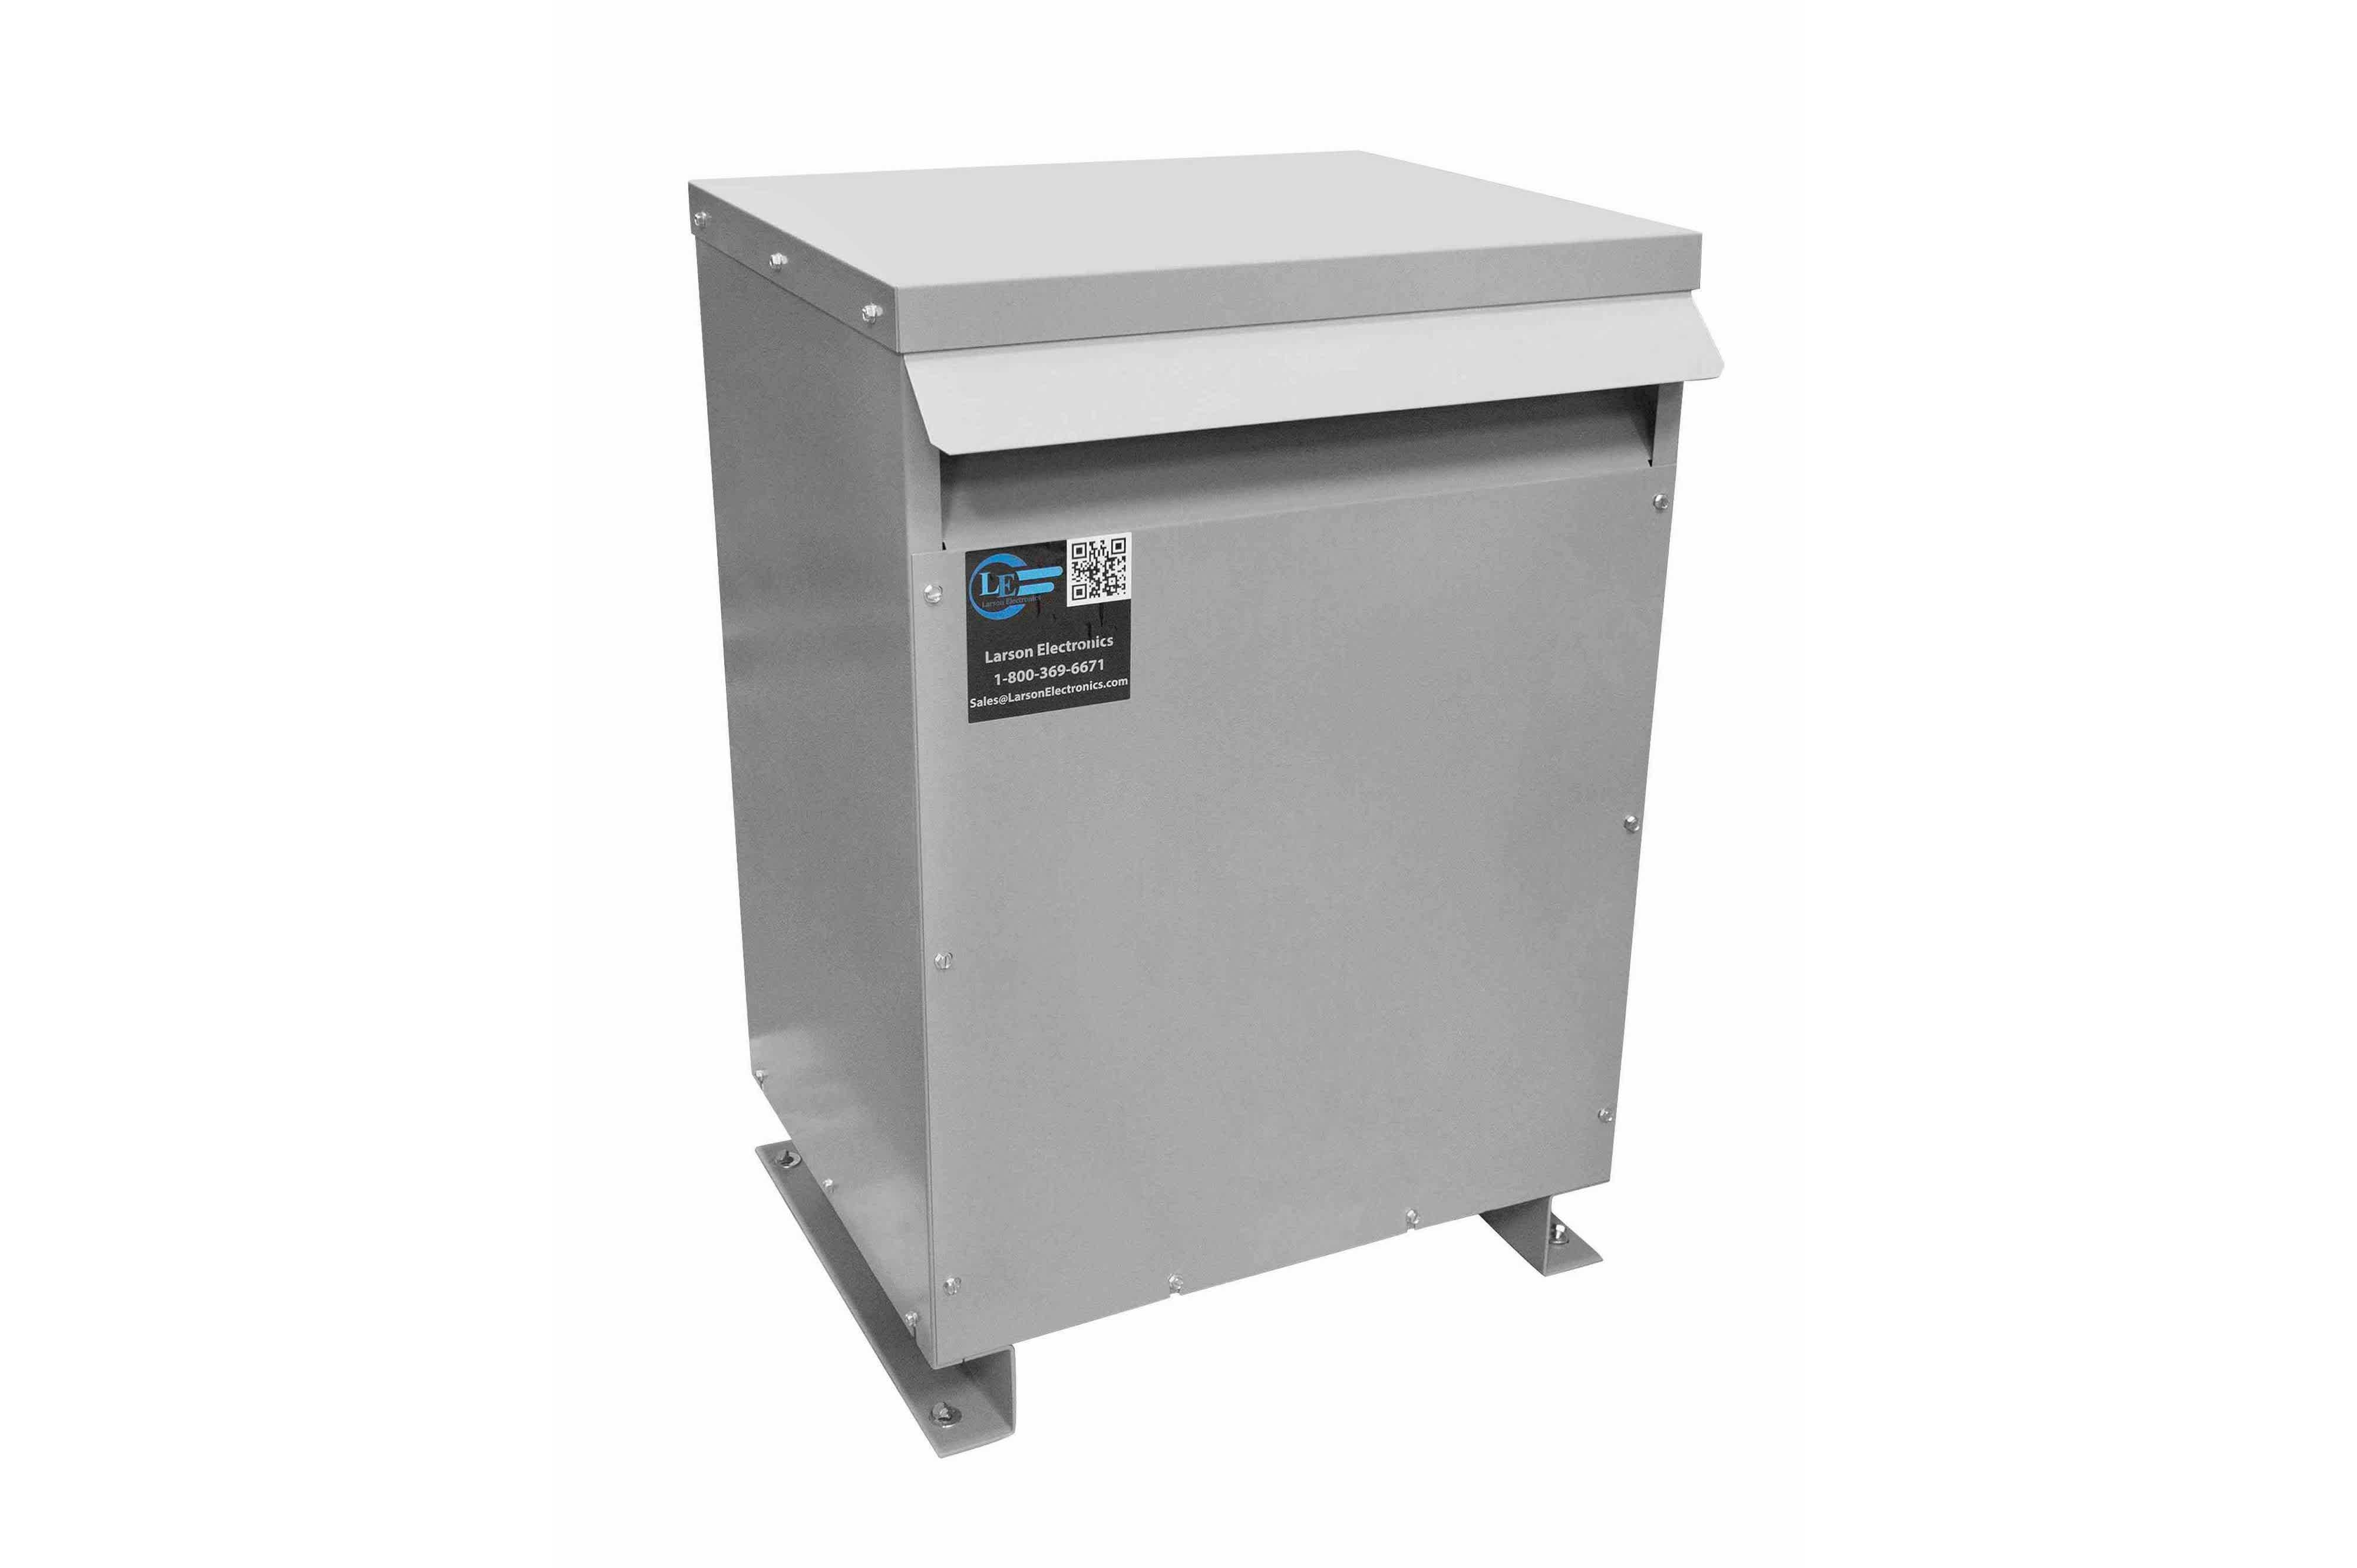 125 kVA 3PH Isolation Transformer, 575V Wye Primary, 240V/120 Delta Secondary, N3R, Ventilated, 60 Hz